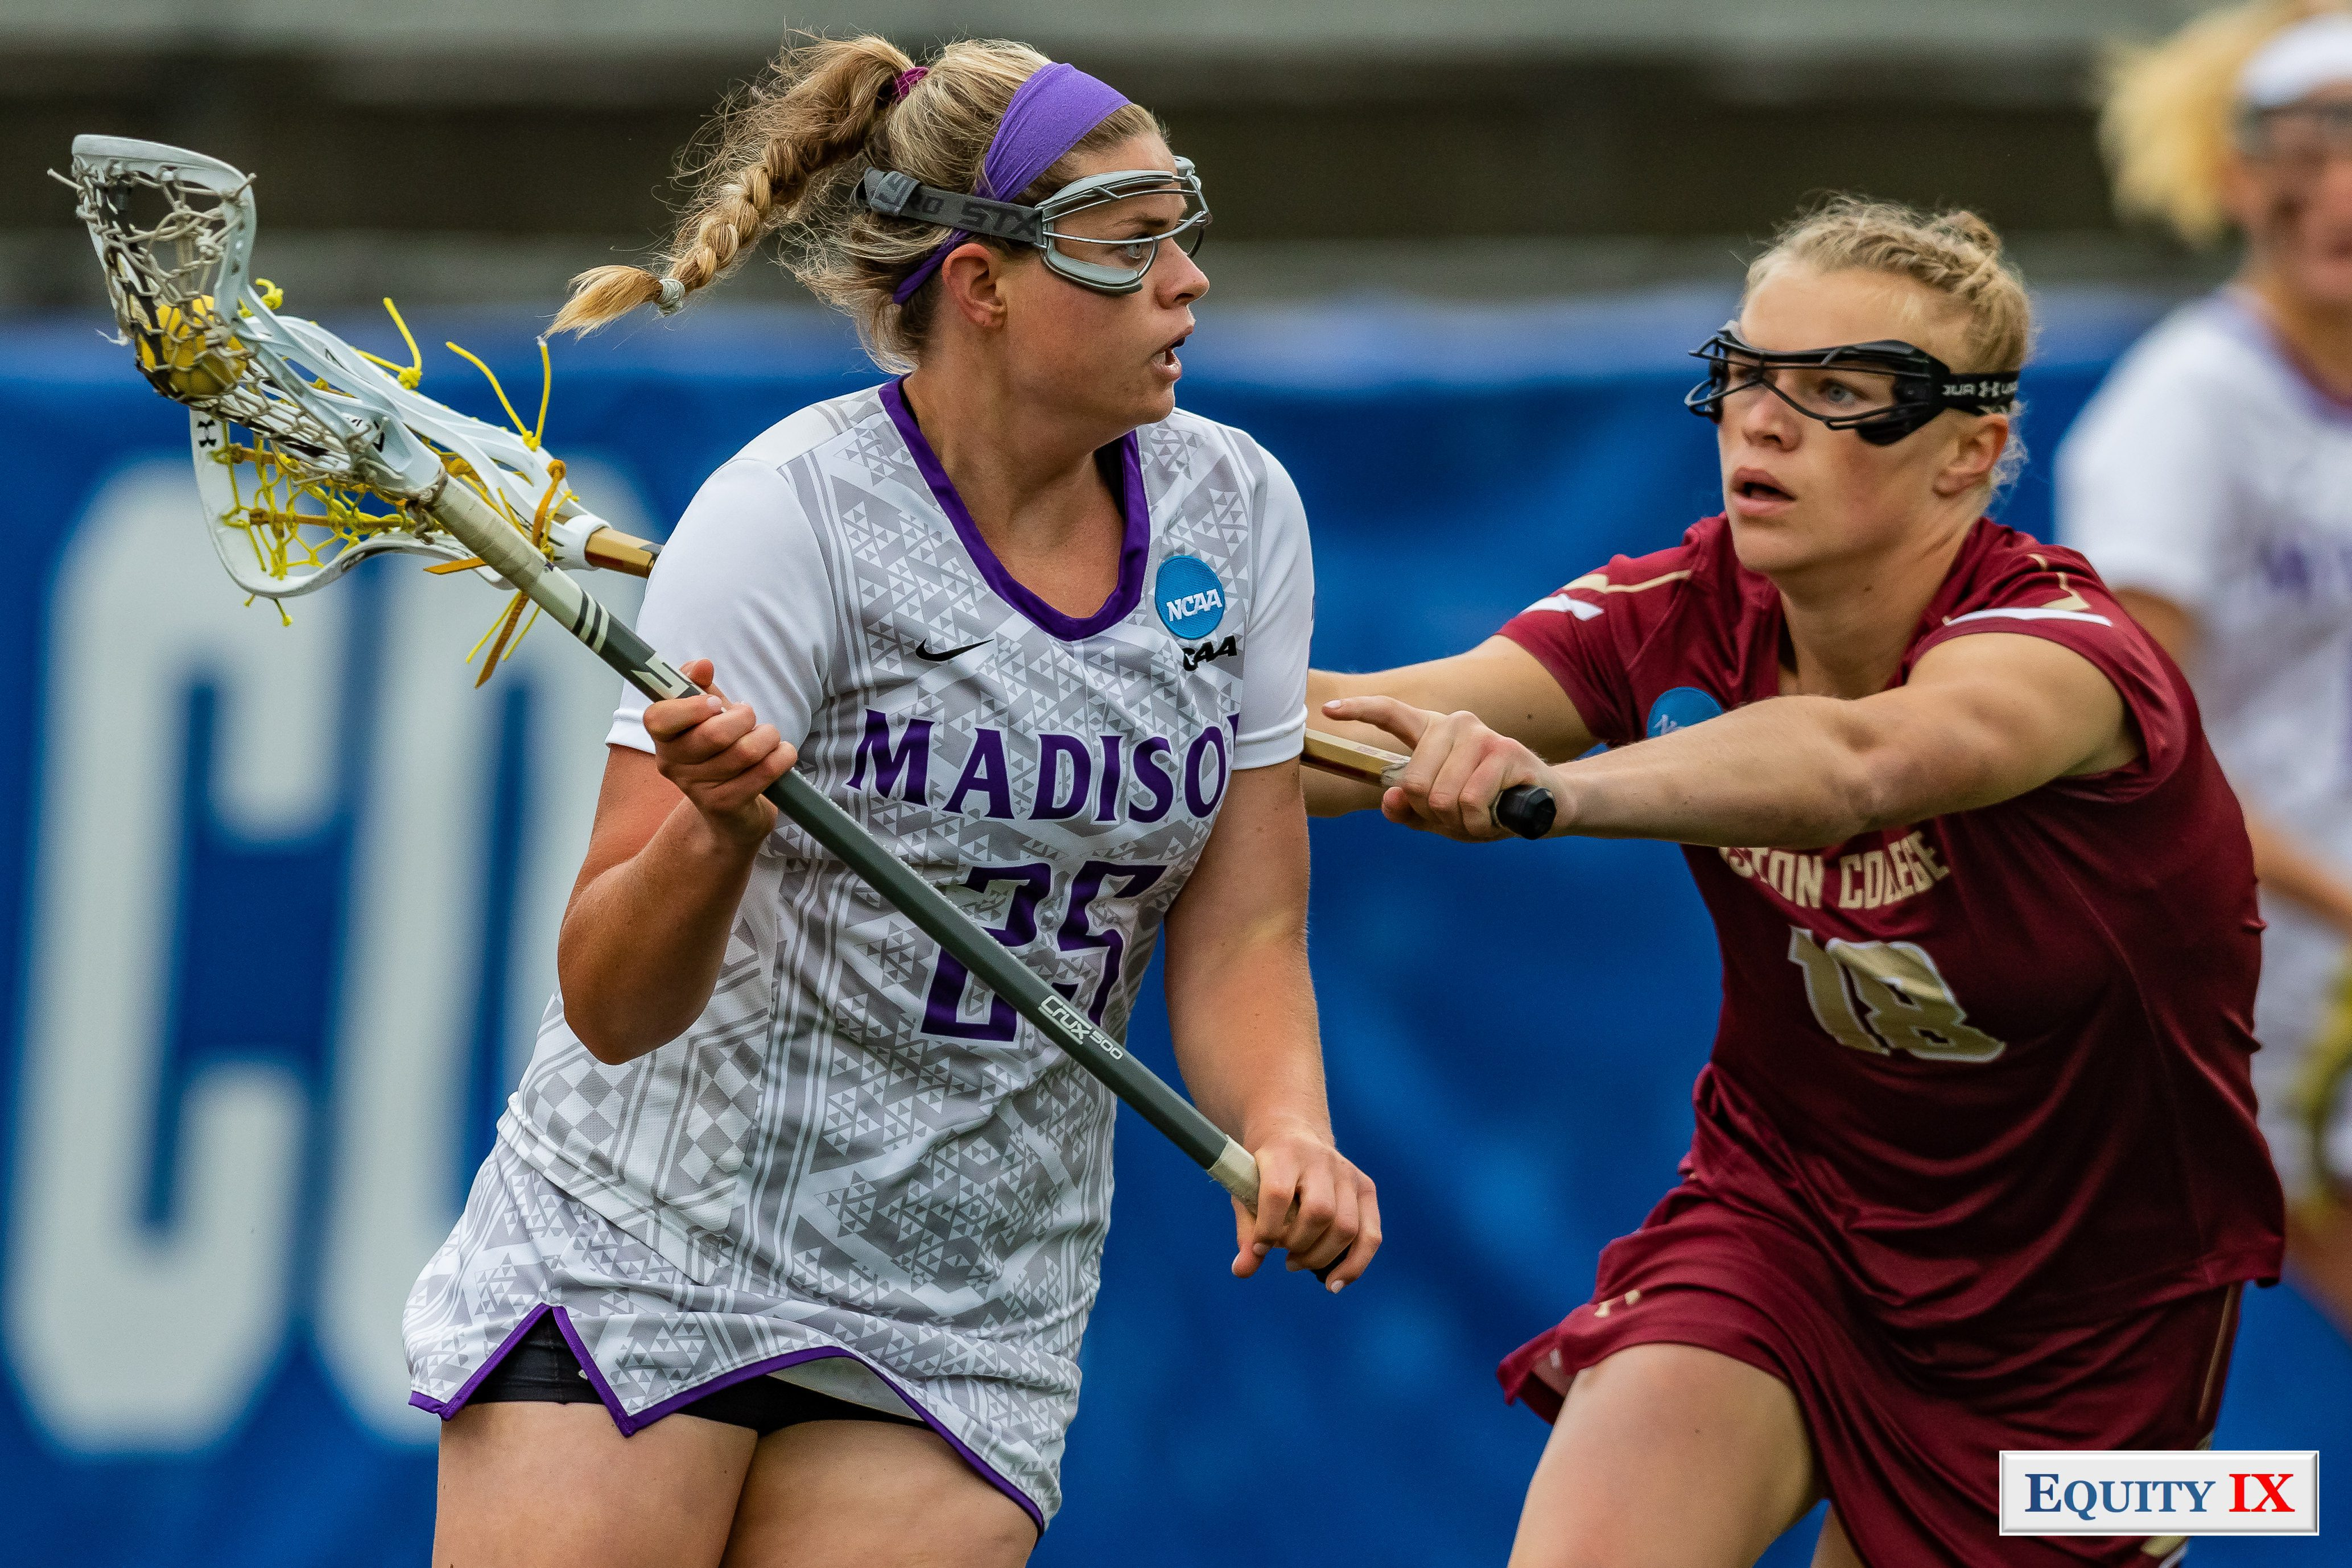 #25 Haley Warden (JUM) cradles yellow lacrosse ball right handed looking to pass wearing purple headband and goggles against #18 Dempsey Arsenault (Boston College) looking into attacker's eyes and cross checking lacrosse stick against JMU's players back - 2018 NCAA Women's Lacrosse Championship Game © Equity IX - SportsOgram - Leigh Ernst Friestedt